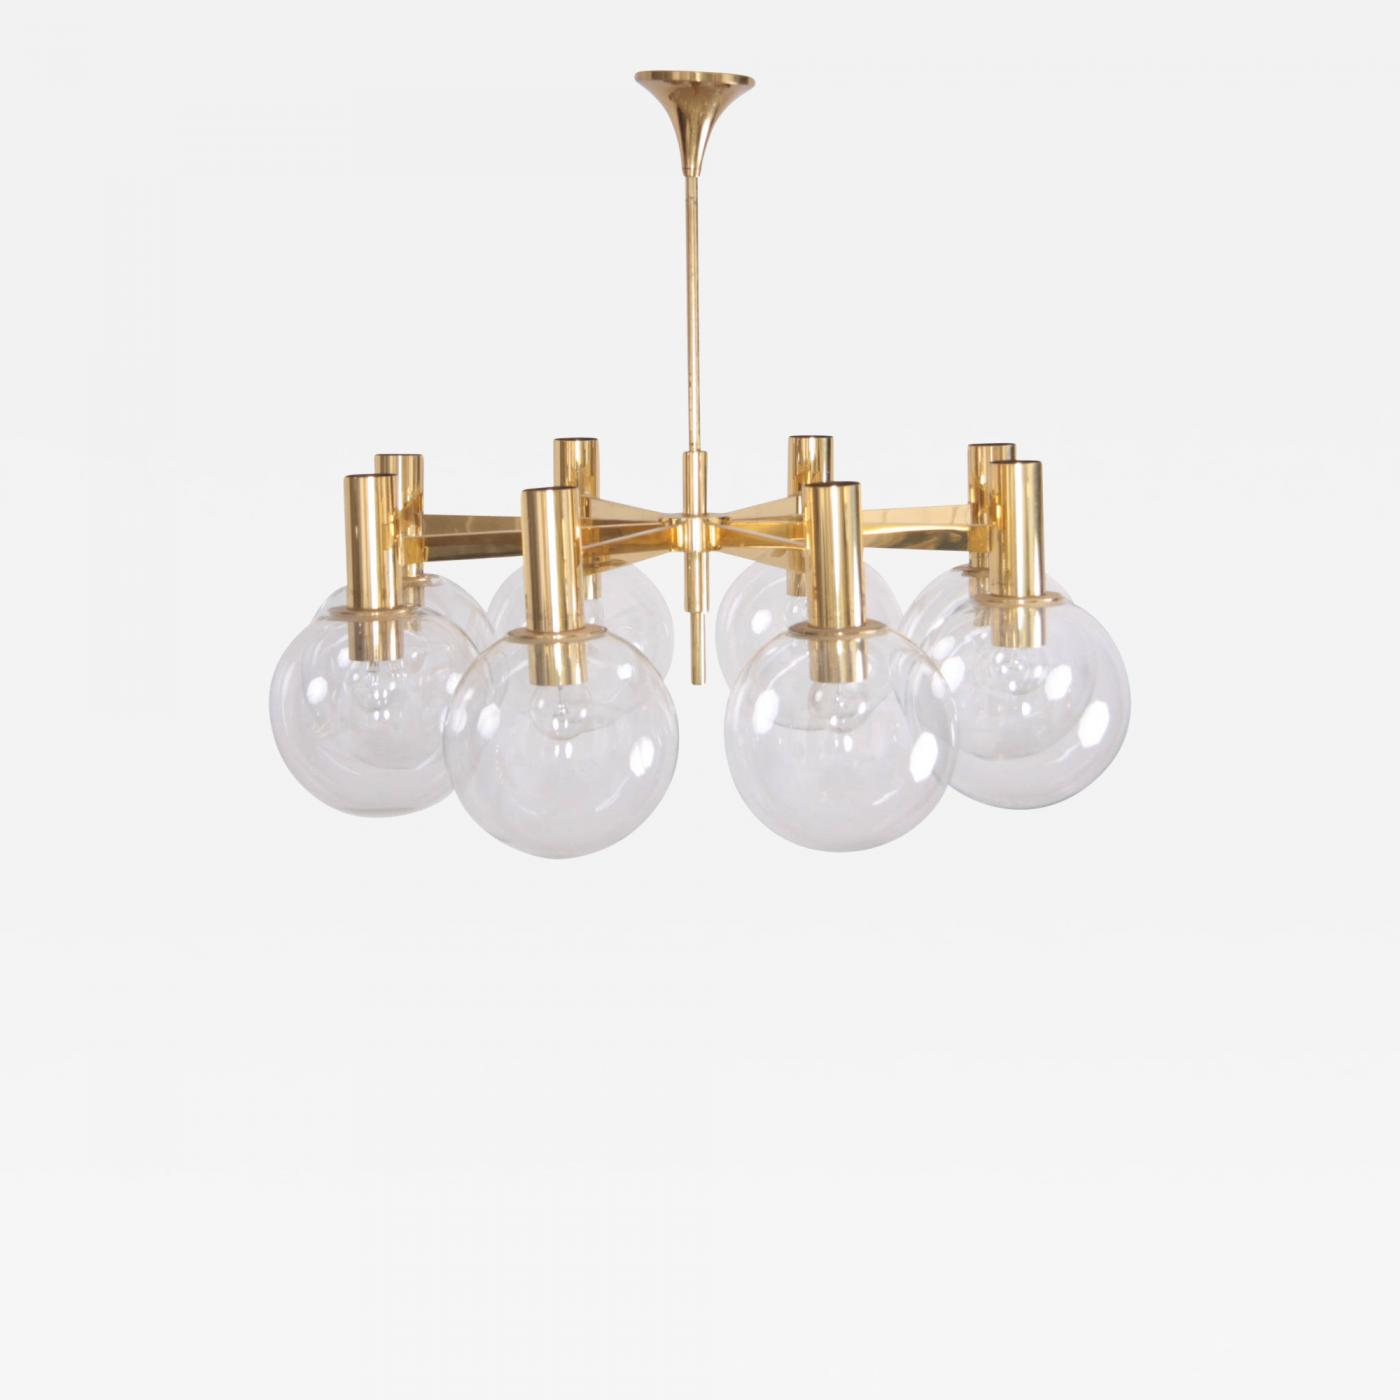 Listings Furniture Lighting Chandeliers And Pendants Ott International Extra Large Brass